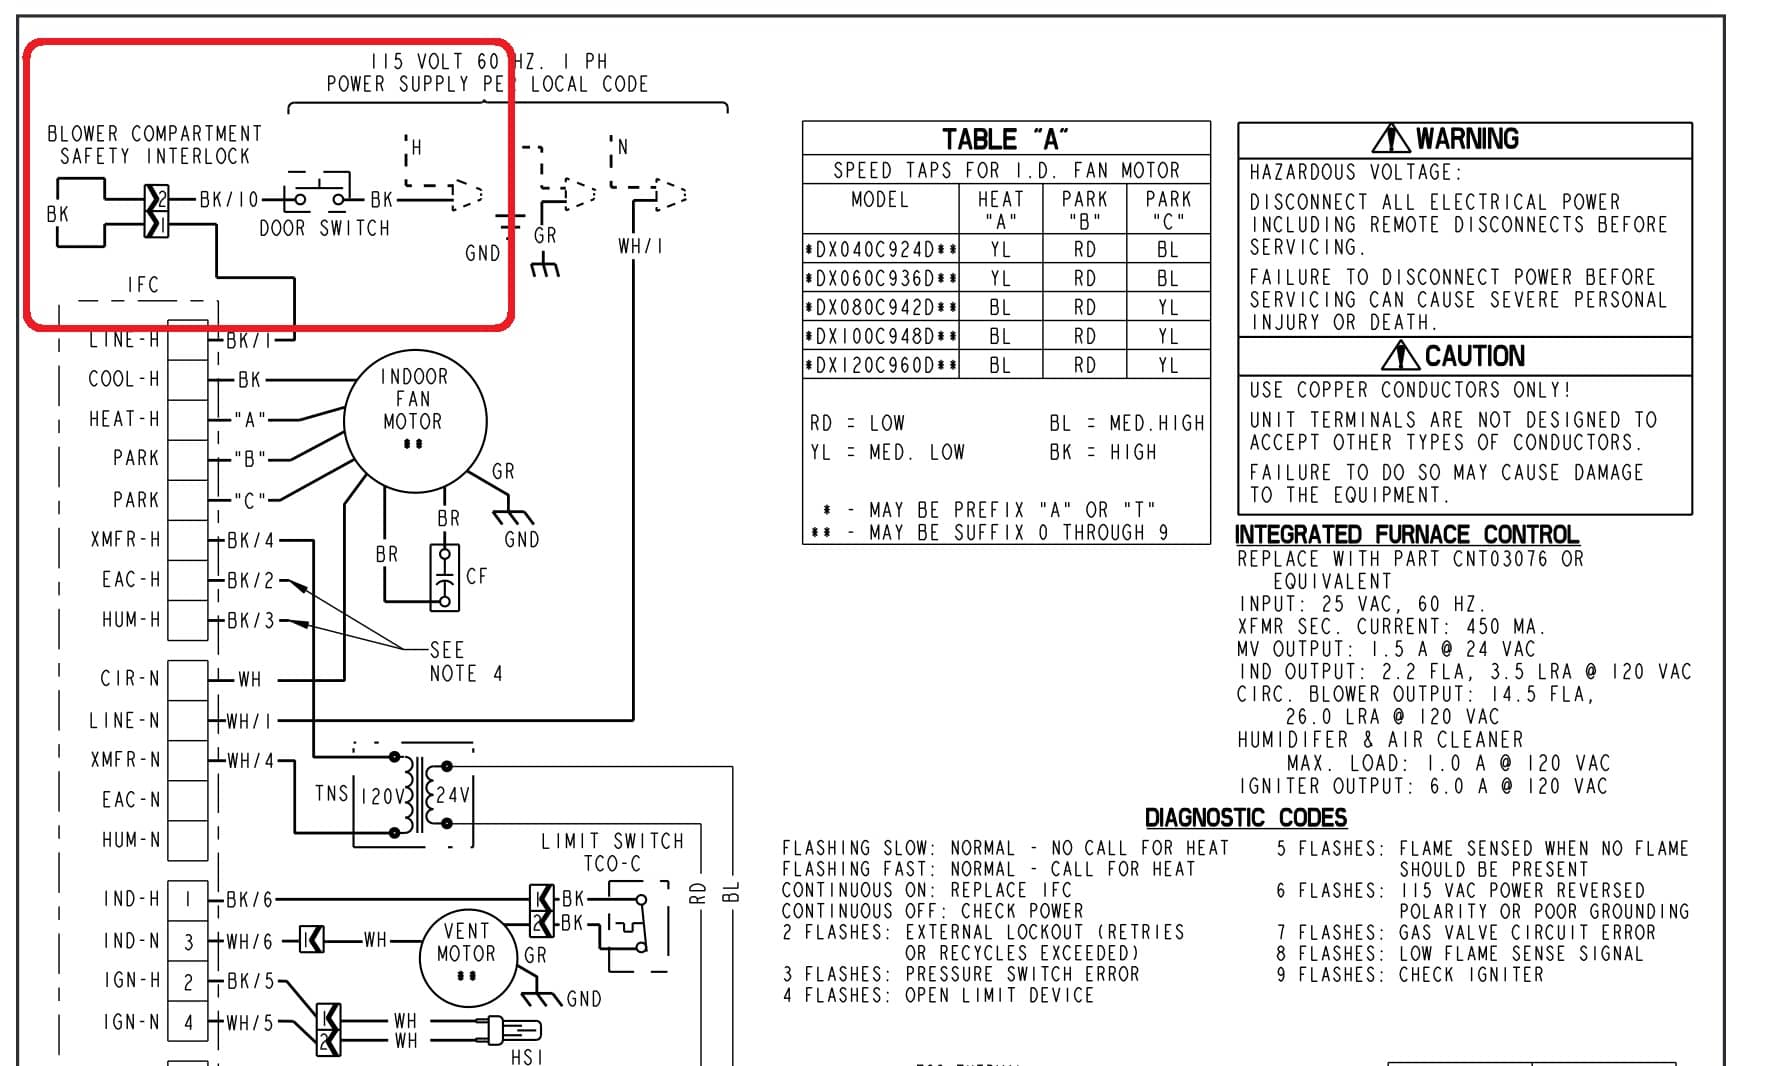 5x512 Lenox Furnace Lenox 33j6201 Board Flames also Gas Furnace Thermostat Wiring Diagram also Default moreover View Trane Xe80 Circuit Board Schematic moreover Watch. on trane xe80